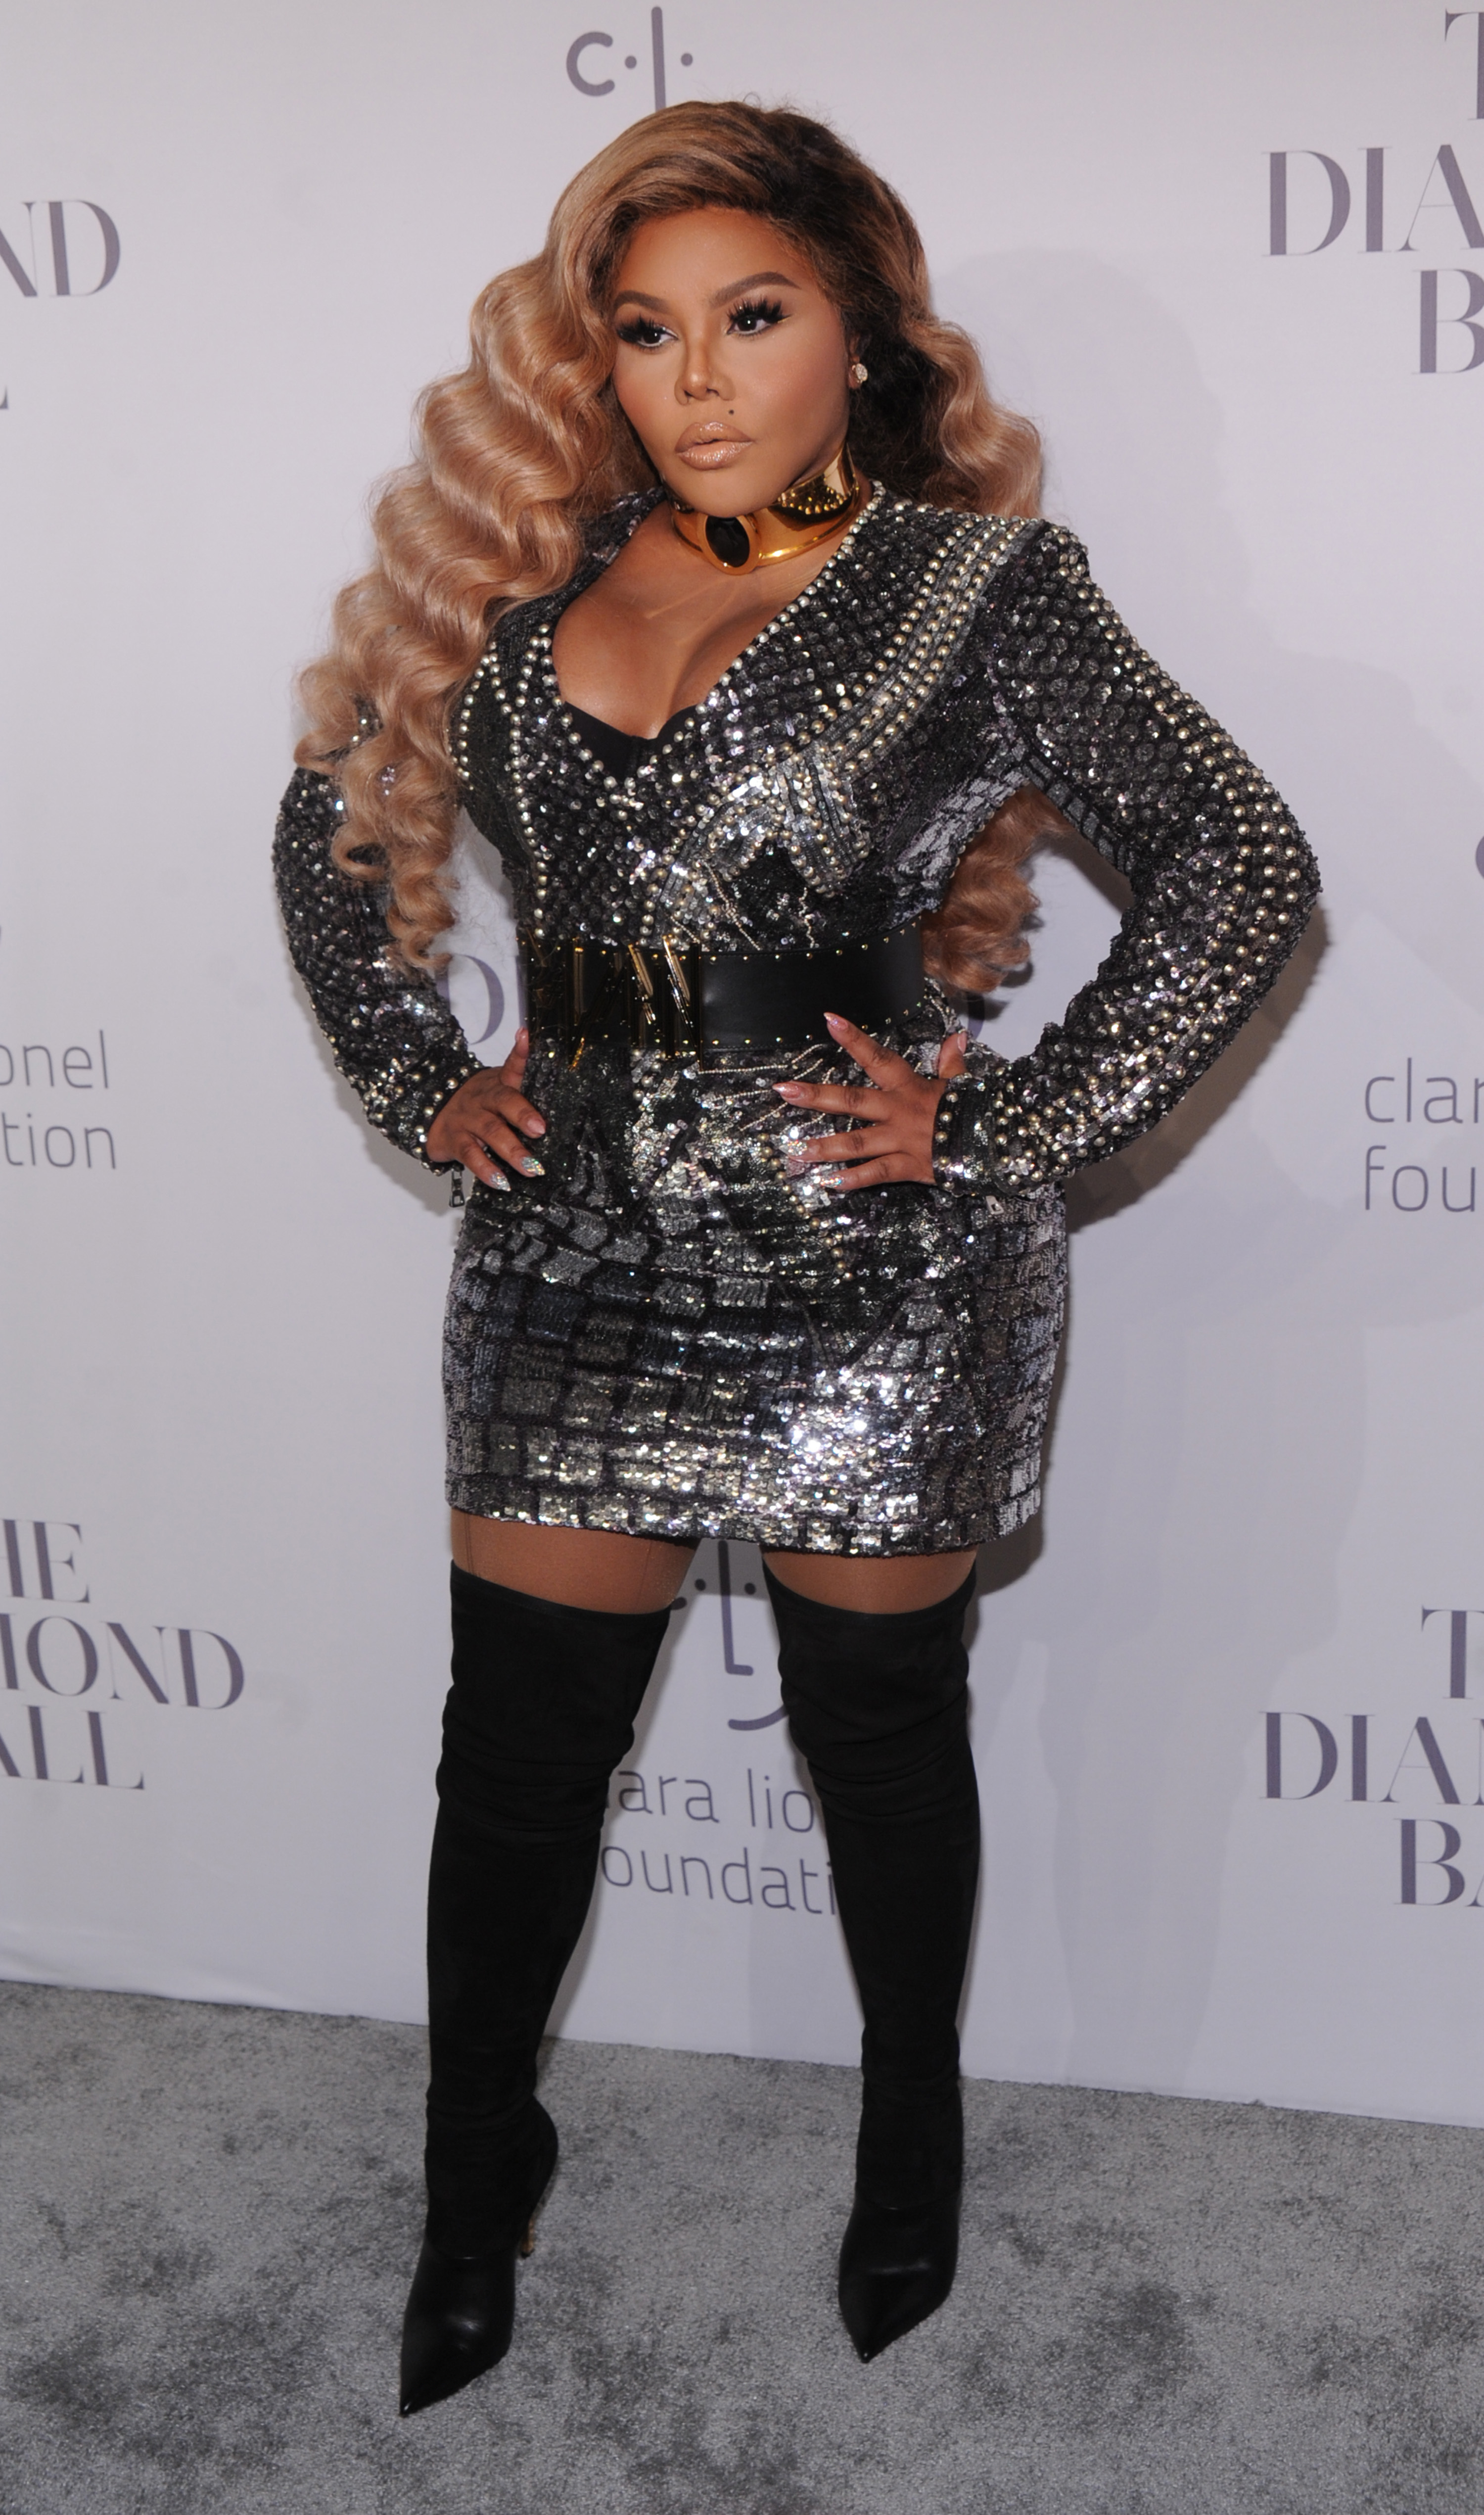 Lil' Kim attends Rihanna's 3rd Annual Diamond Ball at Cipriani Wall Street in New York City on Sept. 14, 2017.